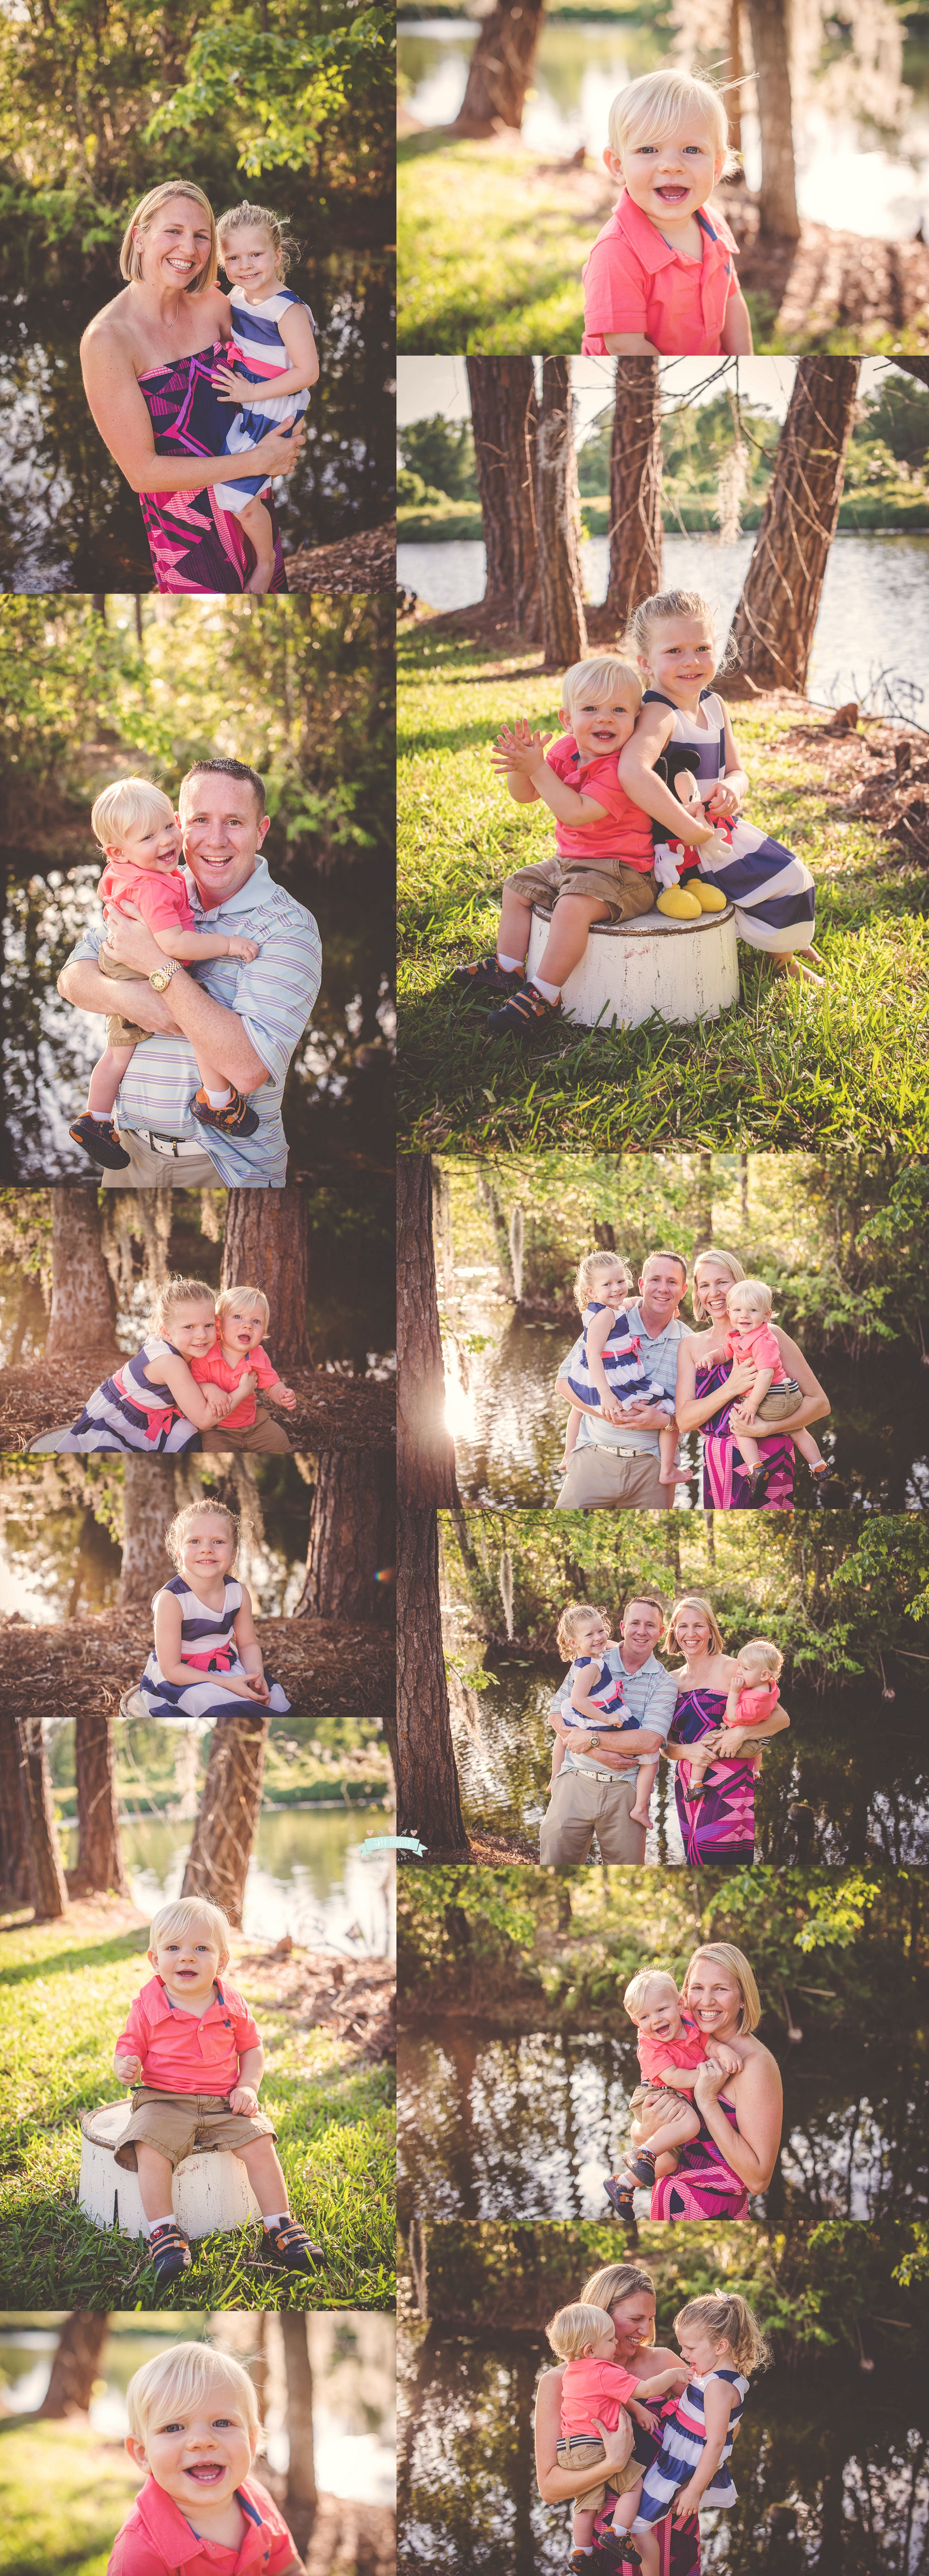 Jacobson Family Session,  Tara Merkler Photography Casselberry, Florida Family Photography Central Florida_0062.jpg